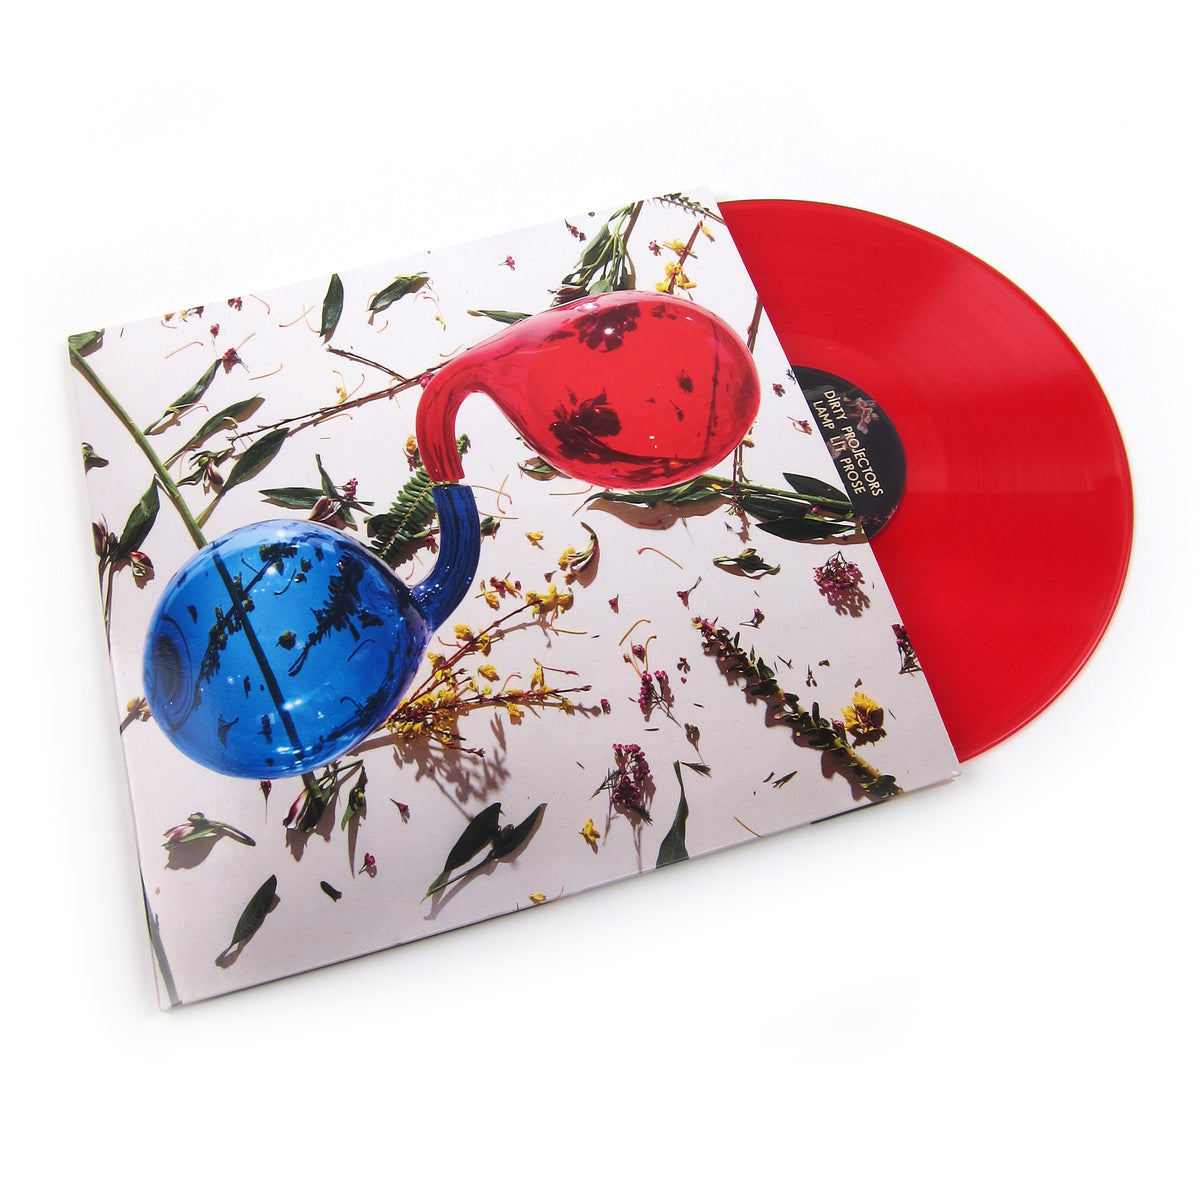 Dirty Projectors: Lamp Lit Prose (Indie Exclusive Colored Vinyl) Vinyl LP